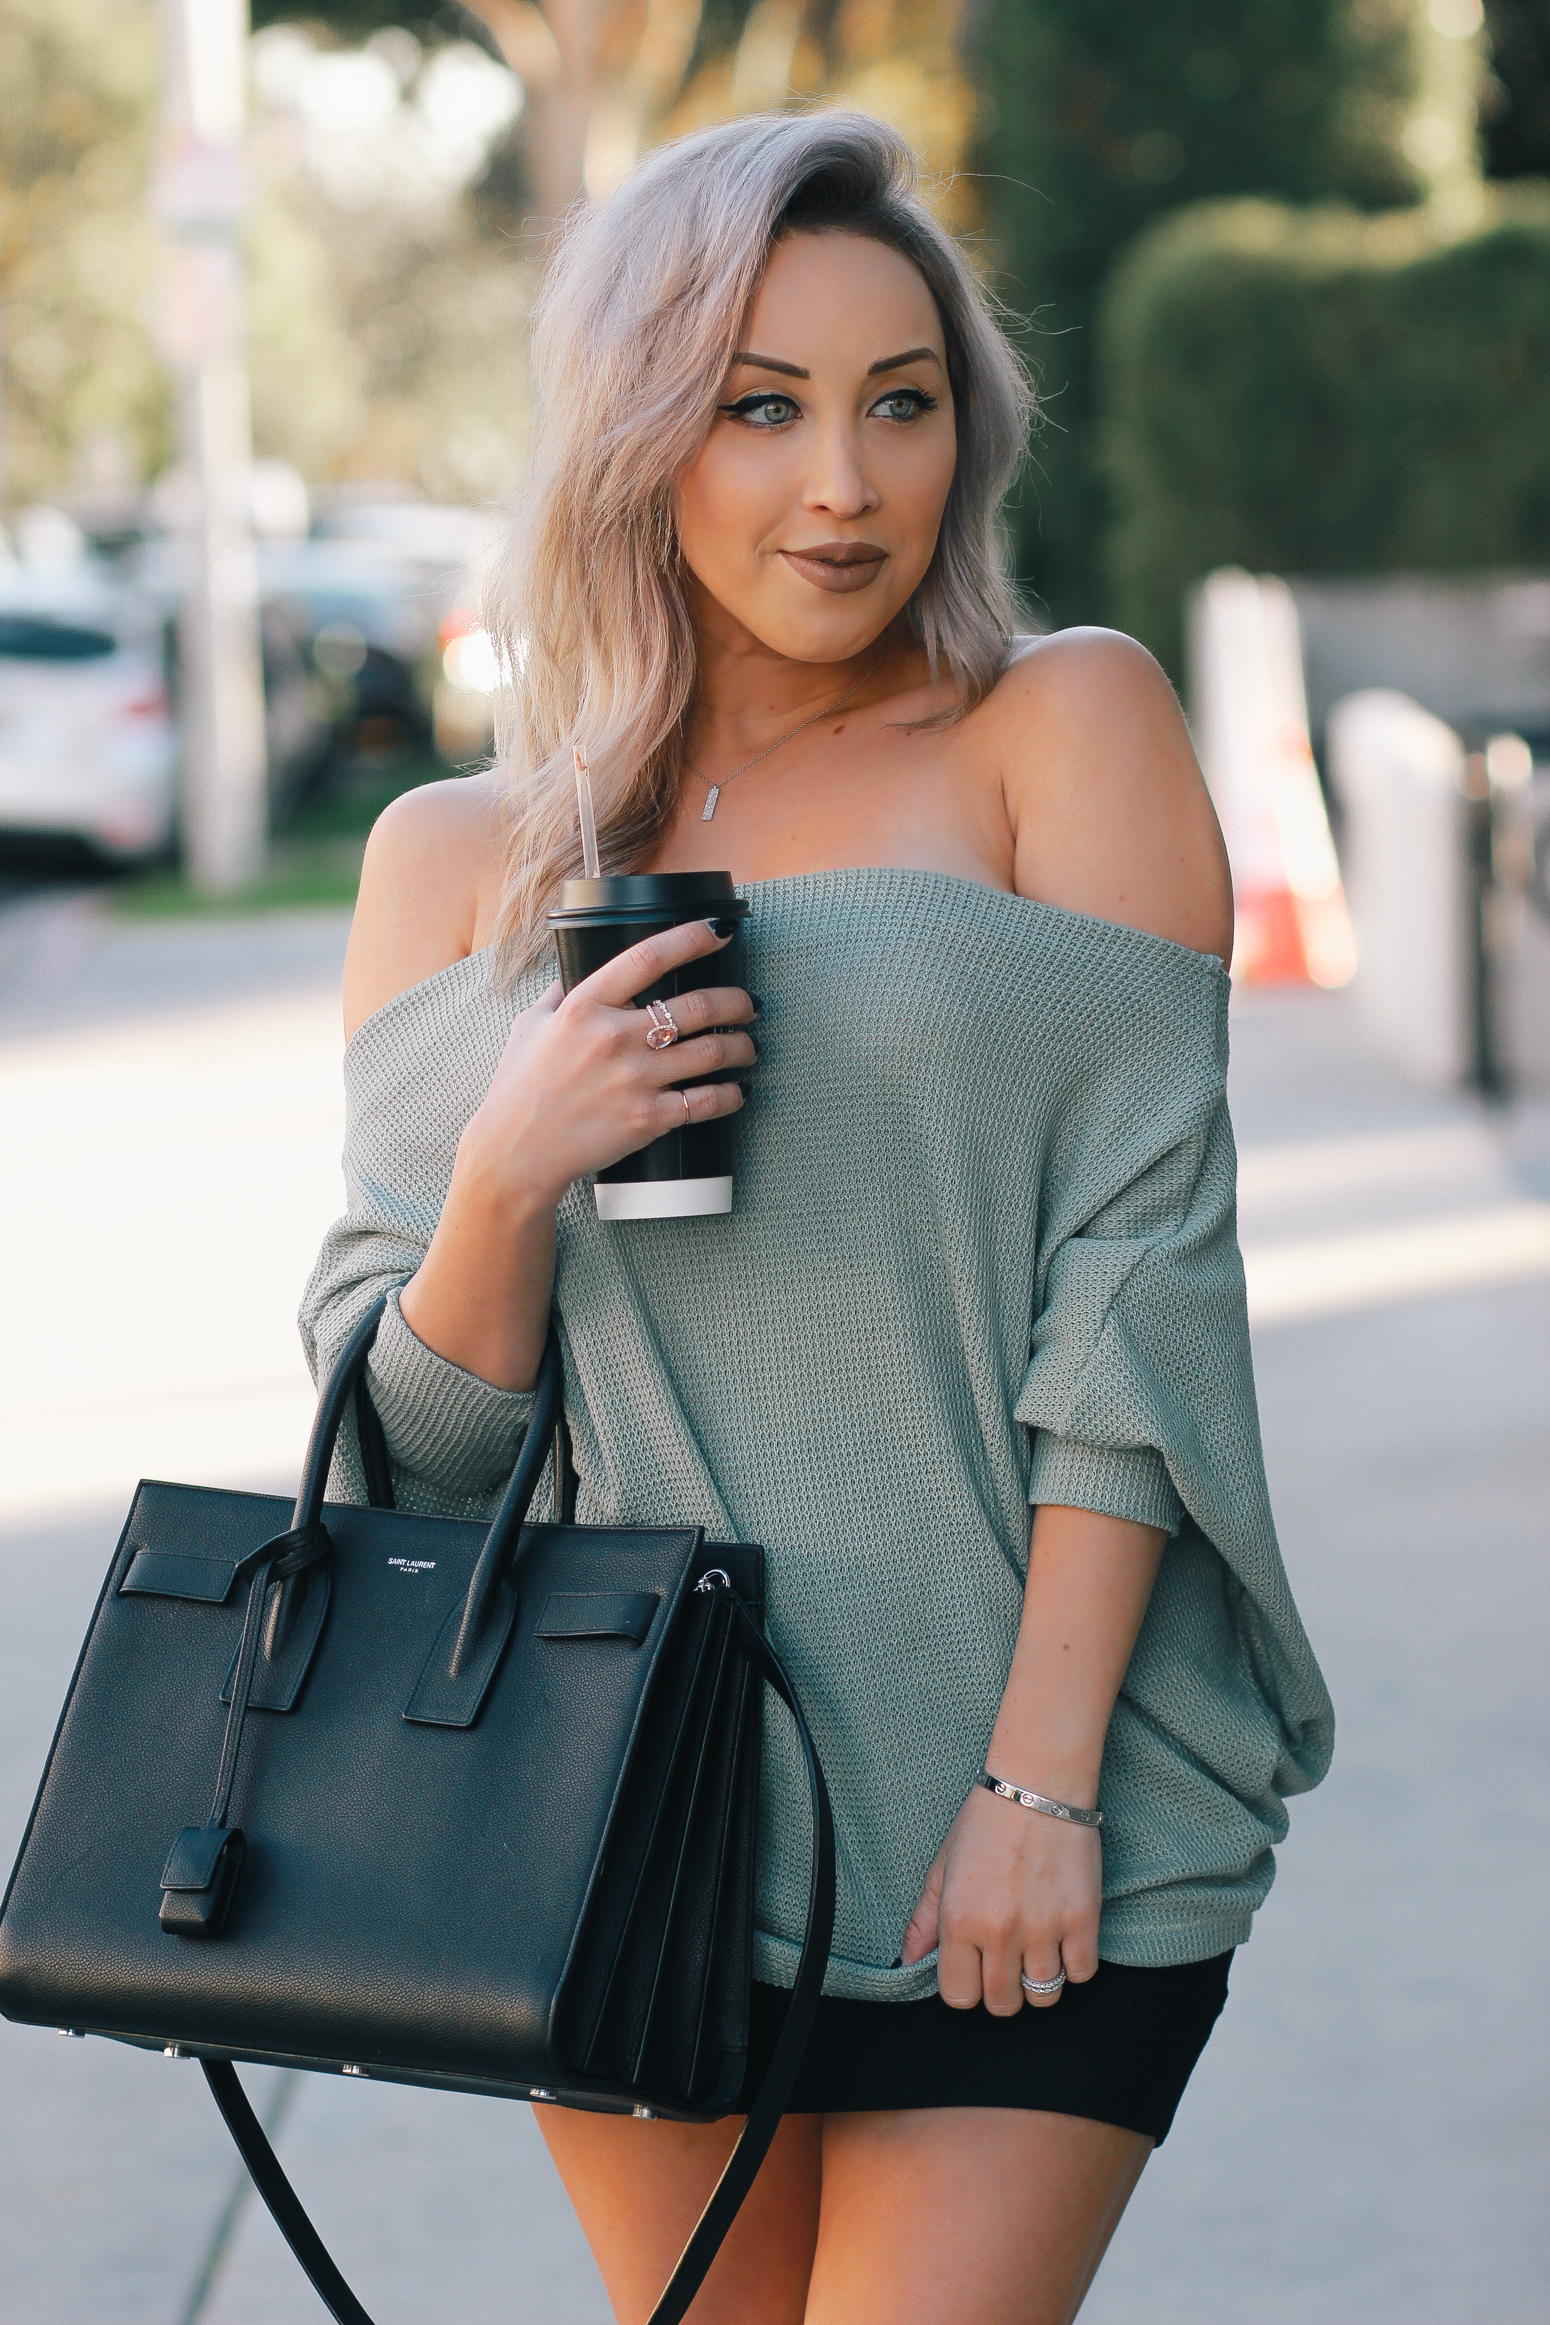 Blondie in the City | Off The Shoulder Top | YSL Bag